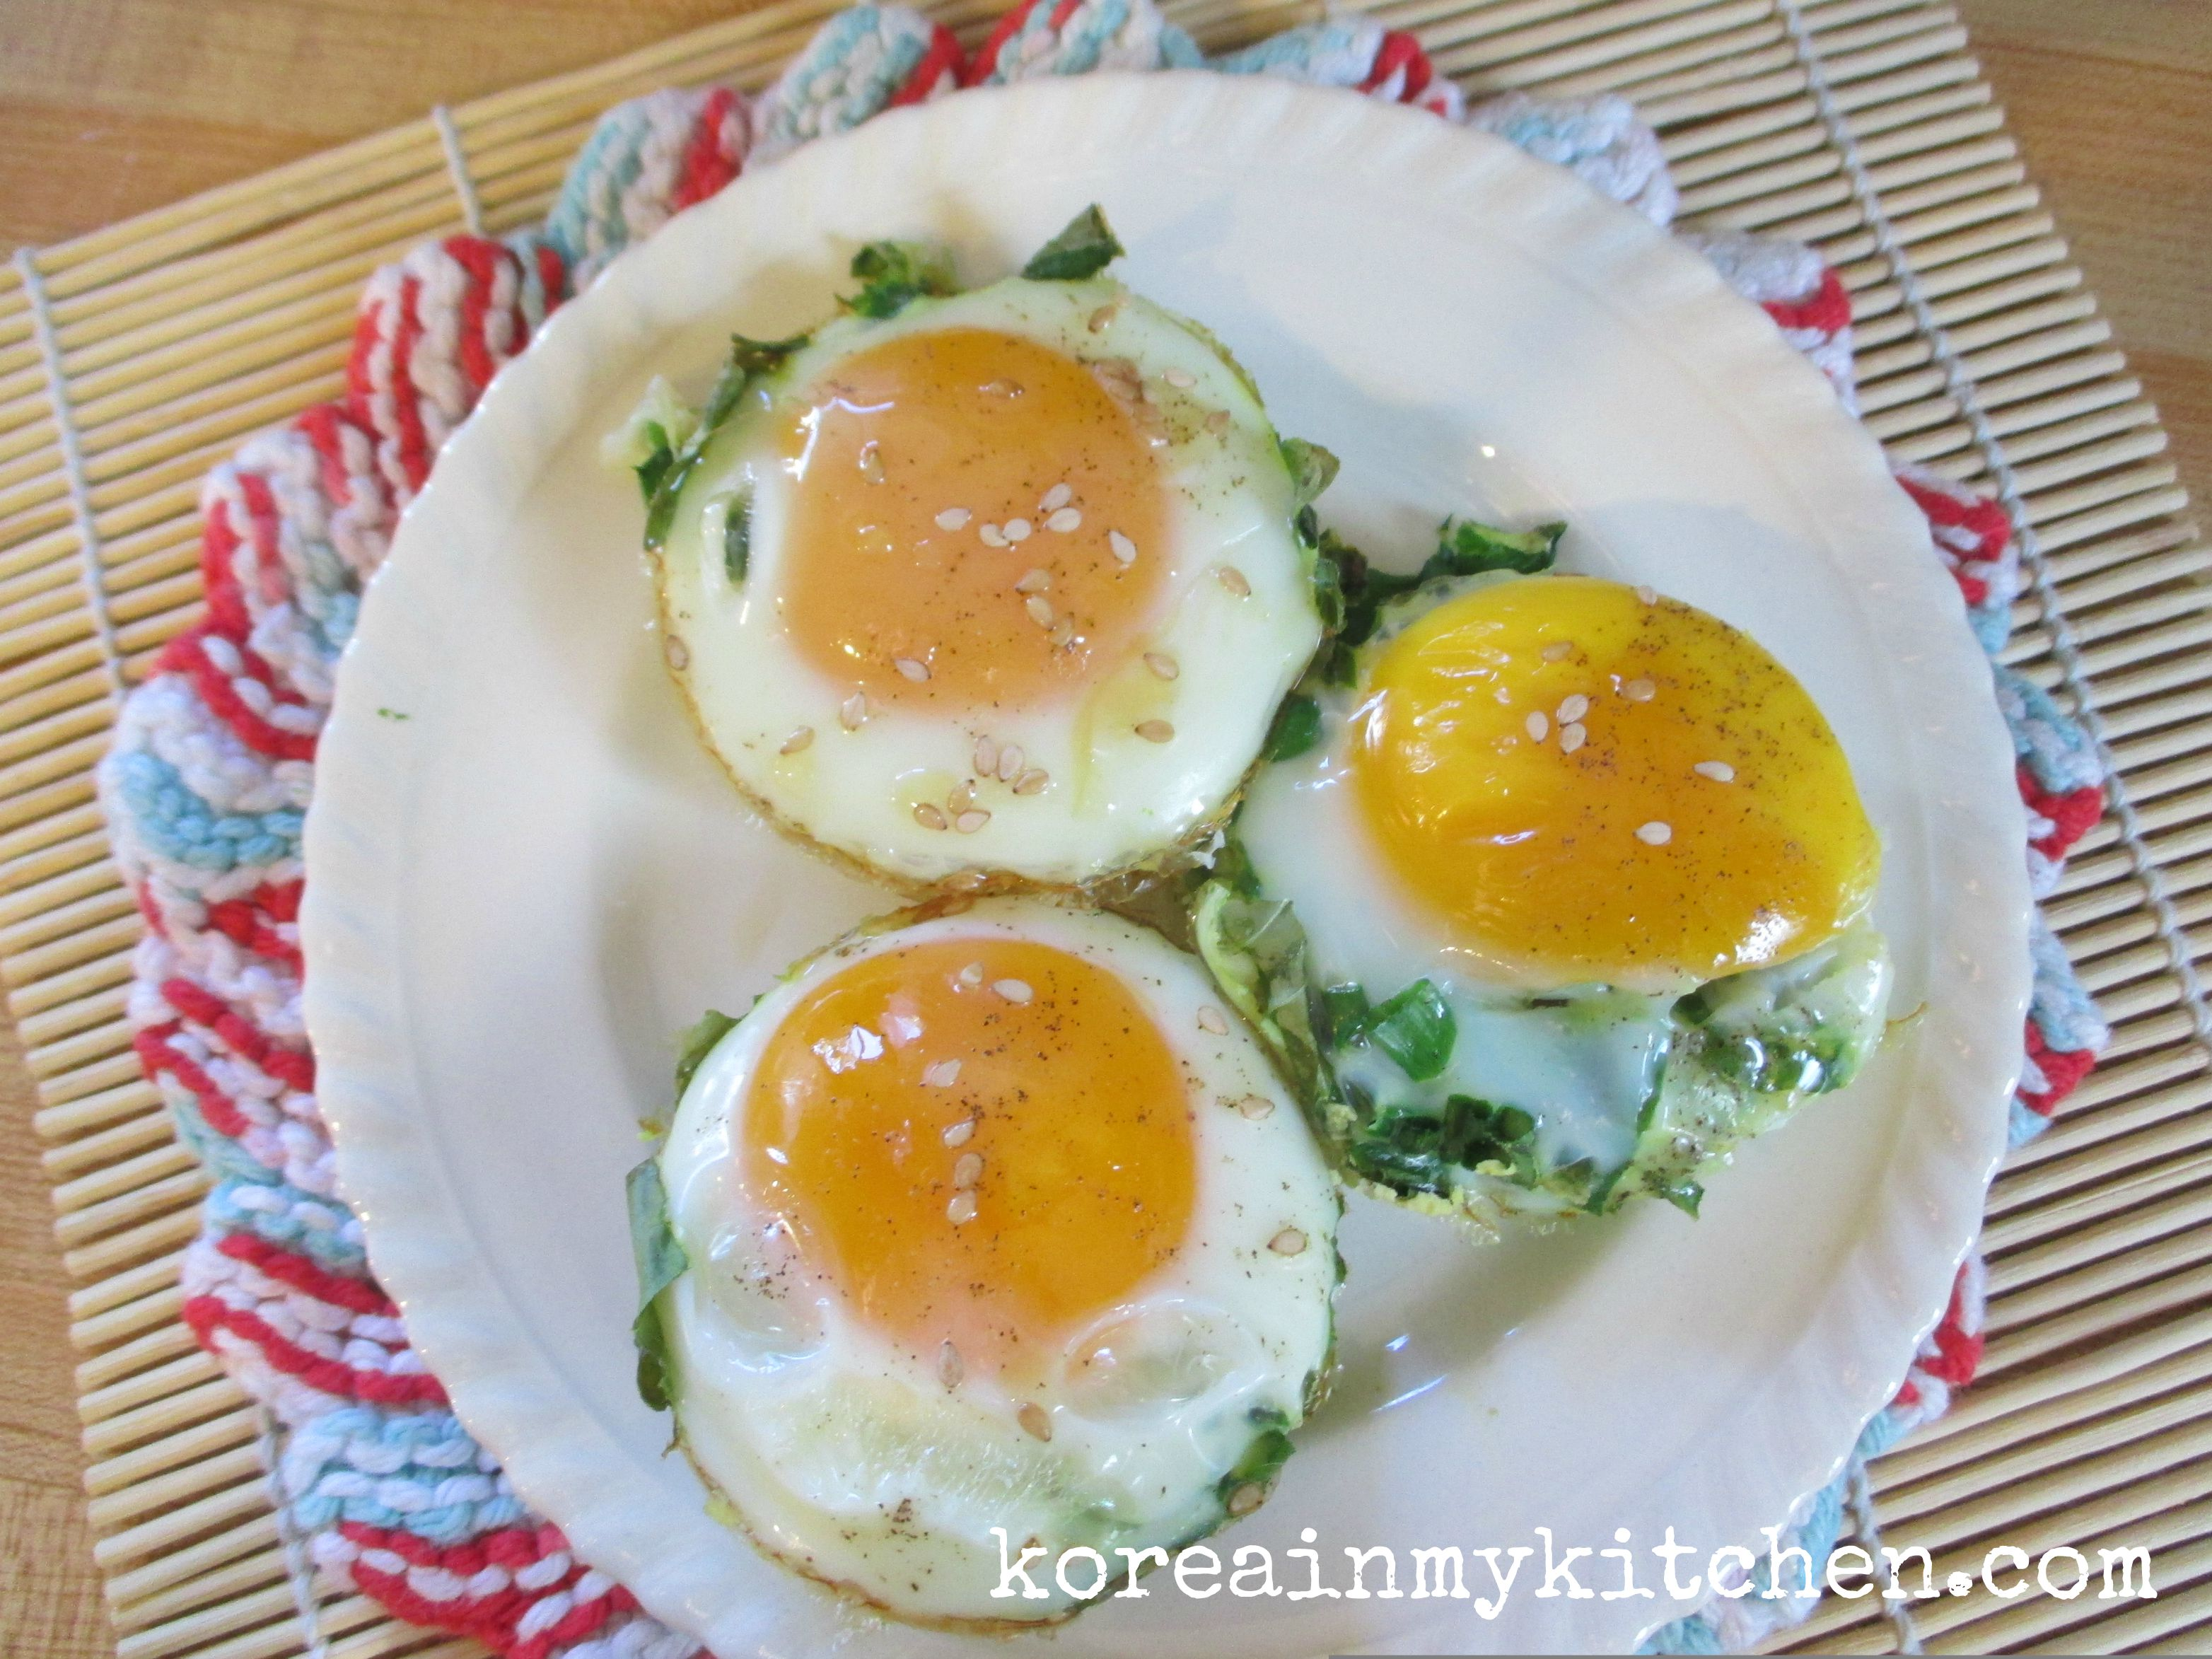 Baked seame spinach egg